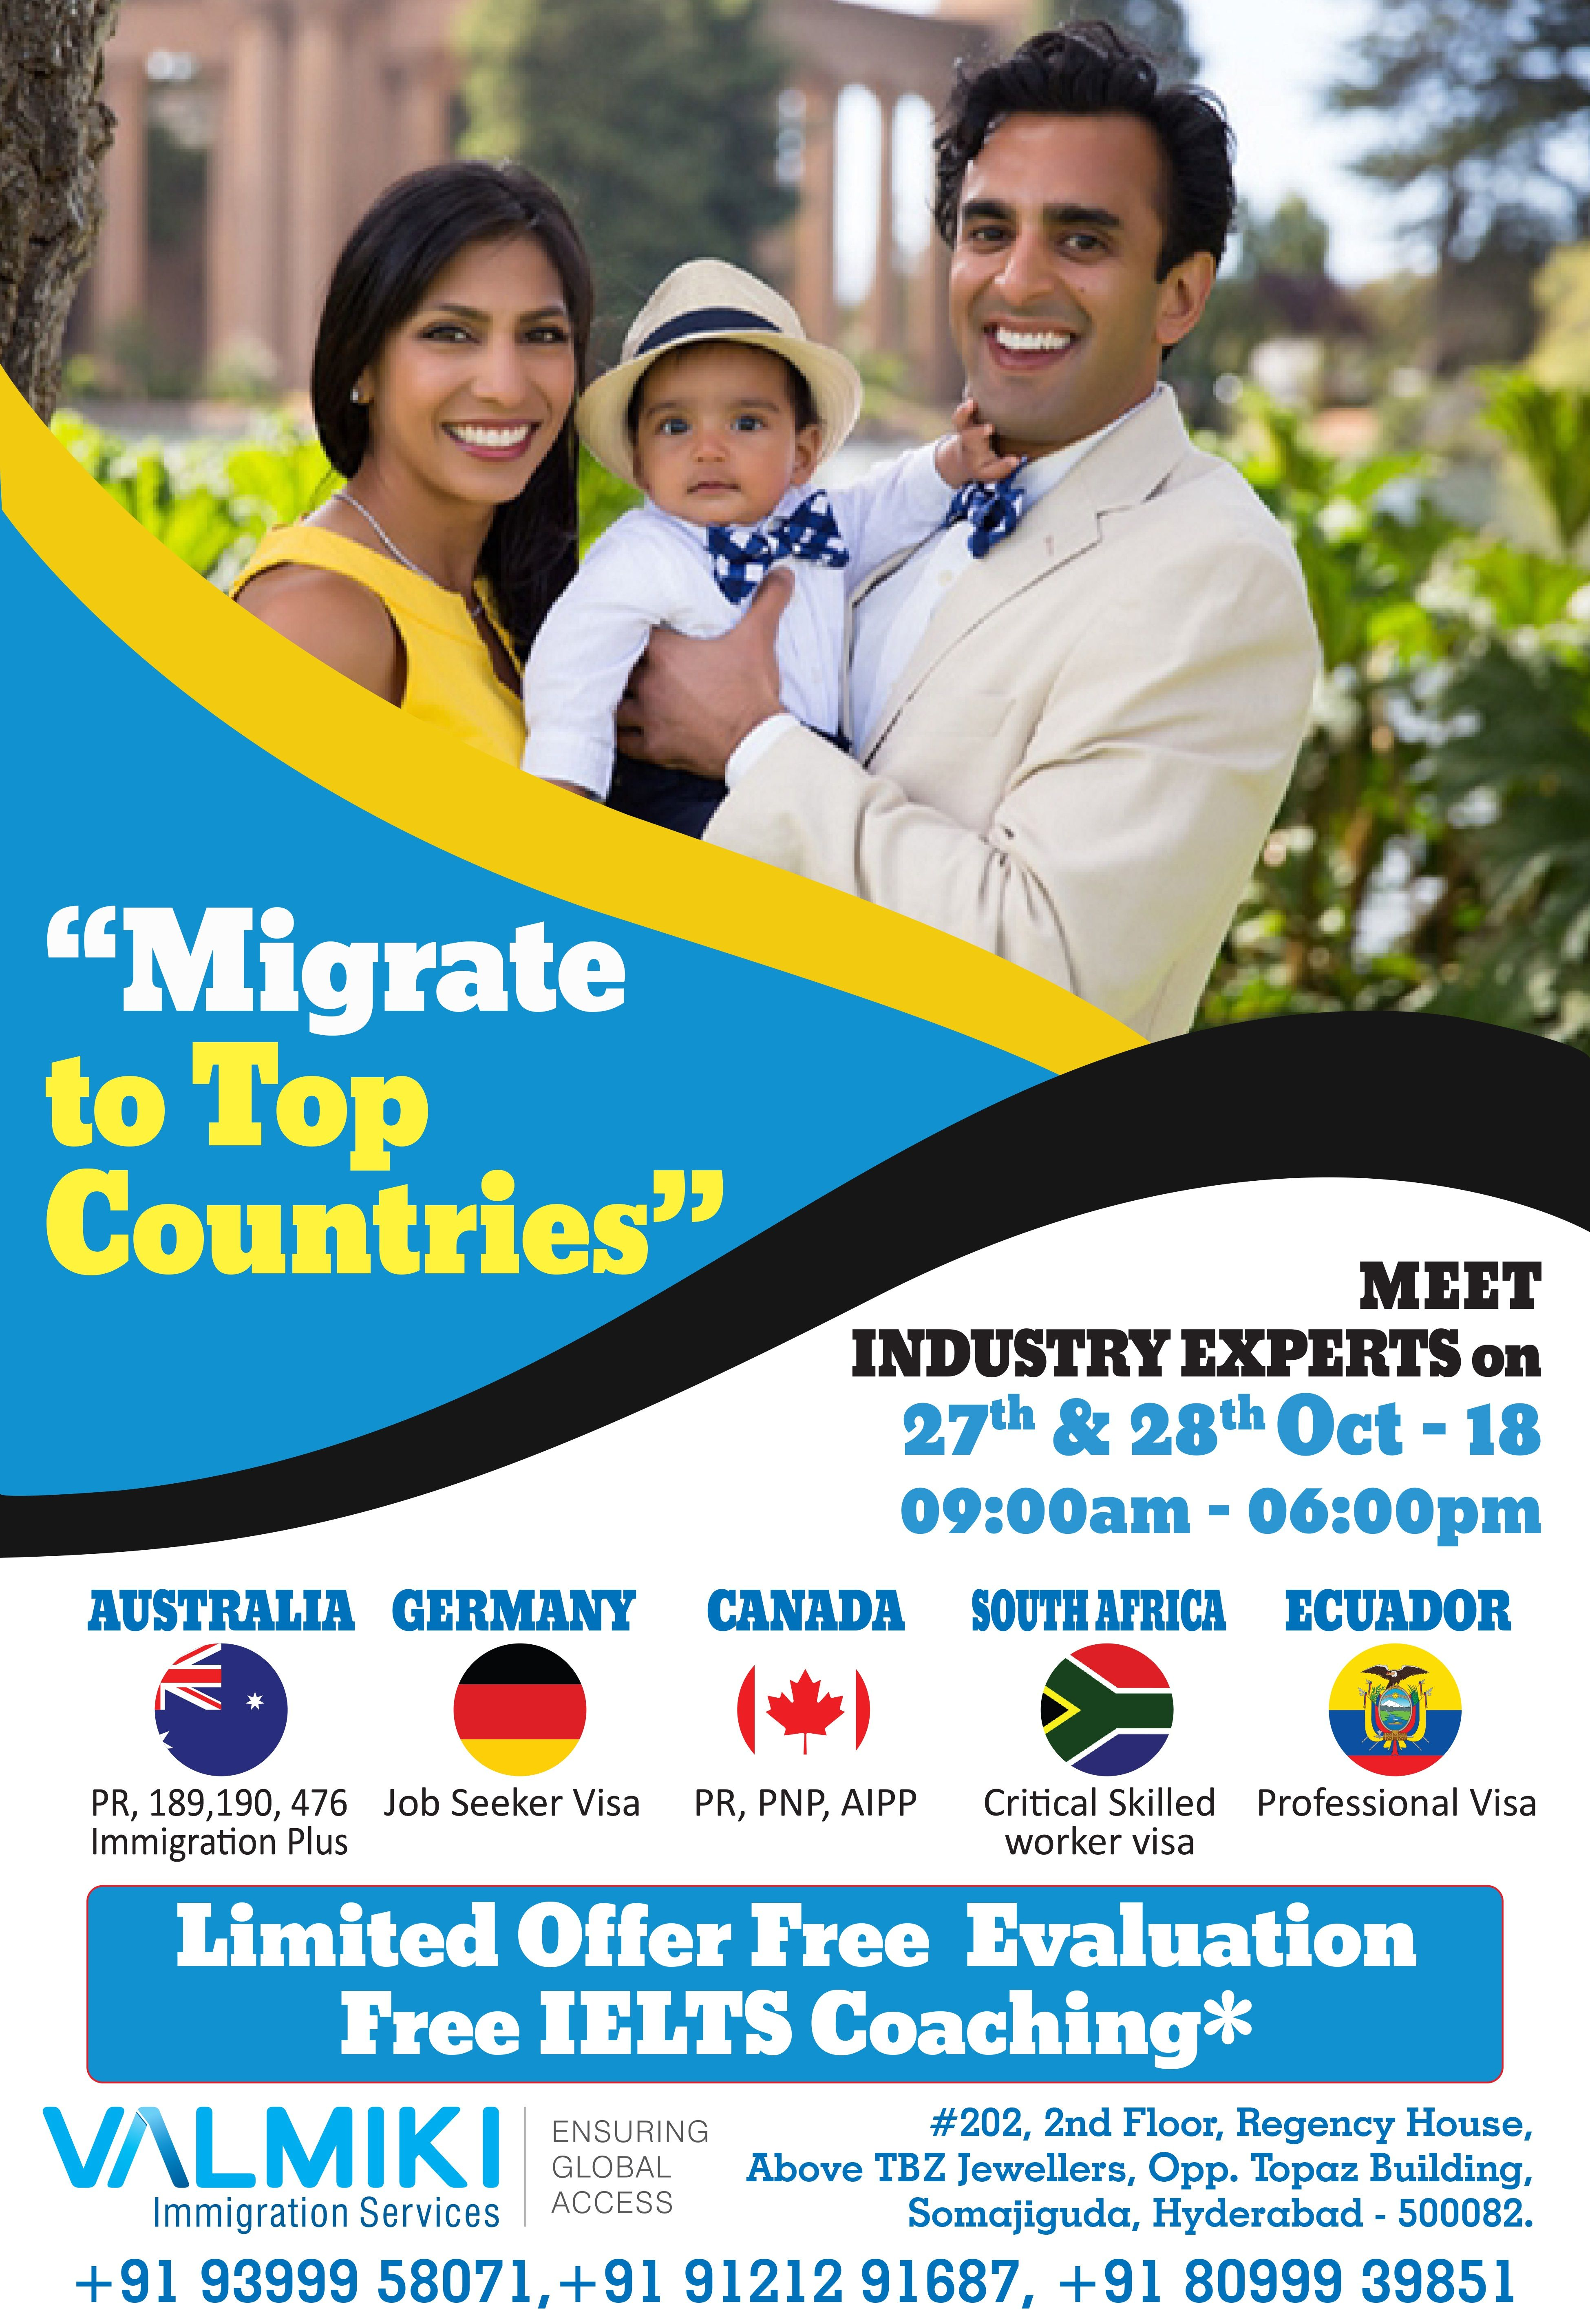 Want to Settle Abroad? Meet industry experts on 27th & 28th October